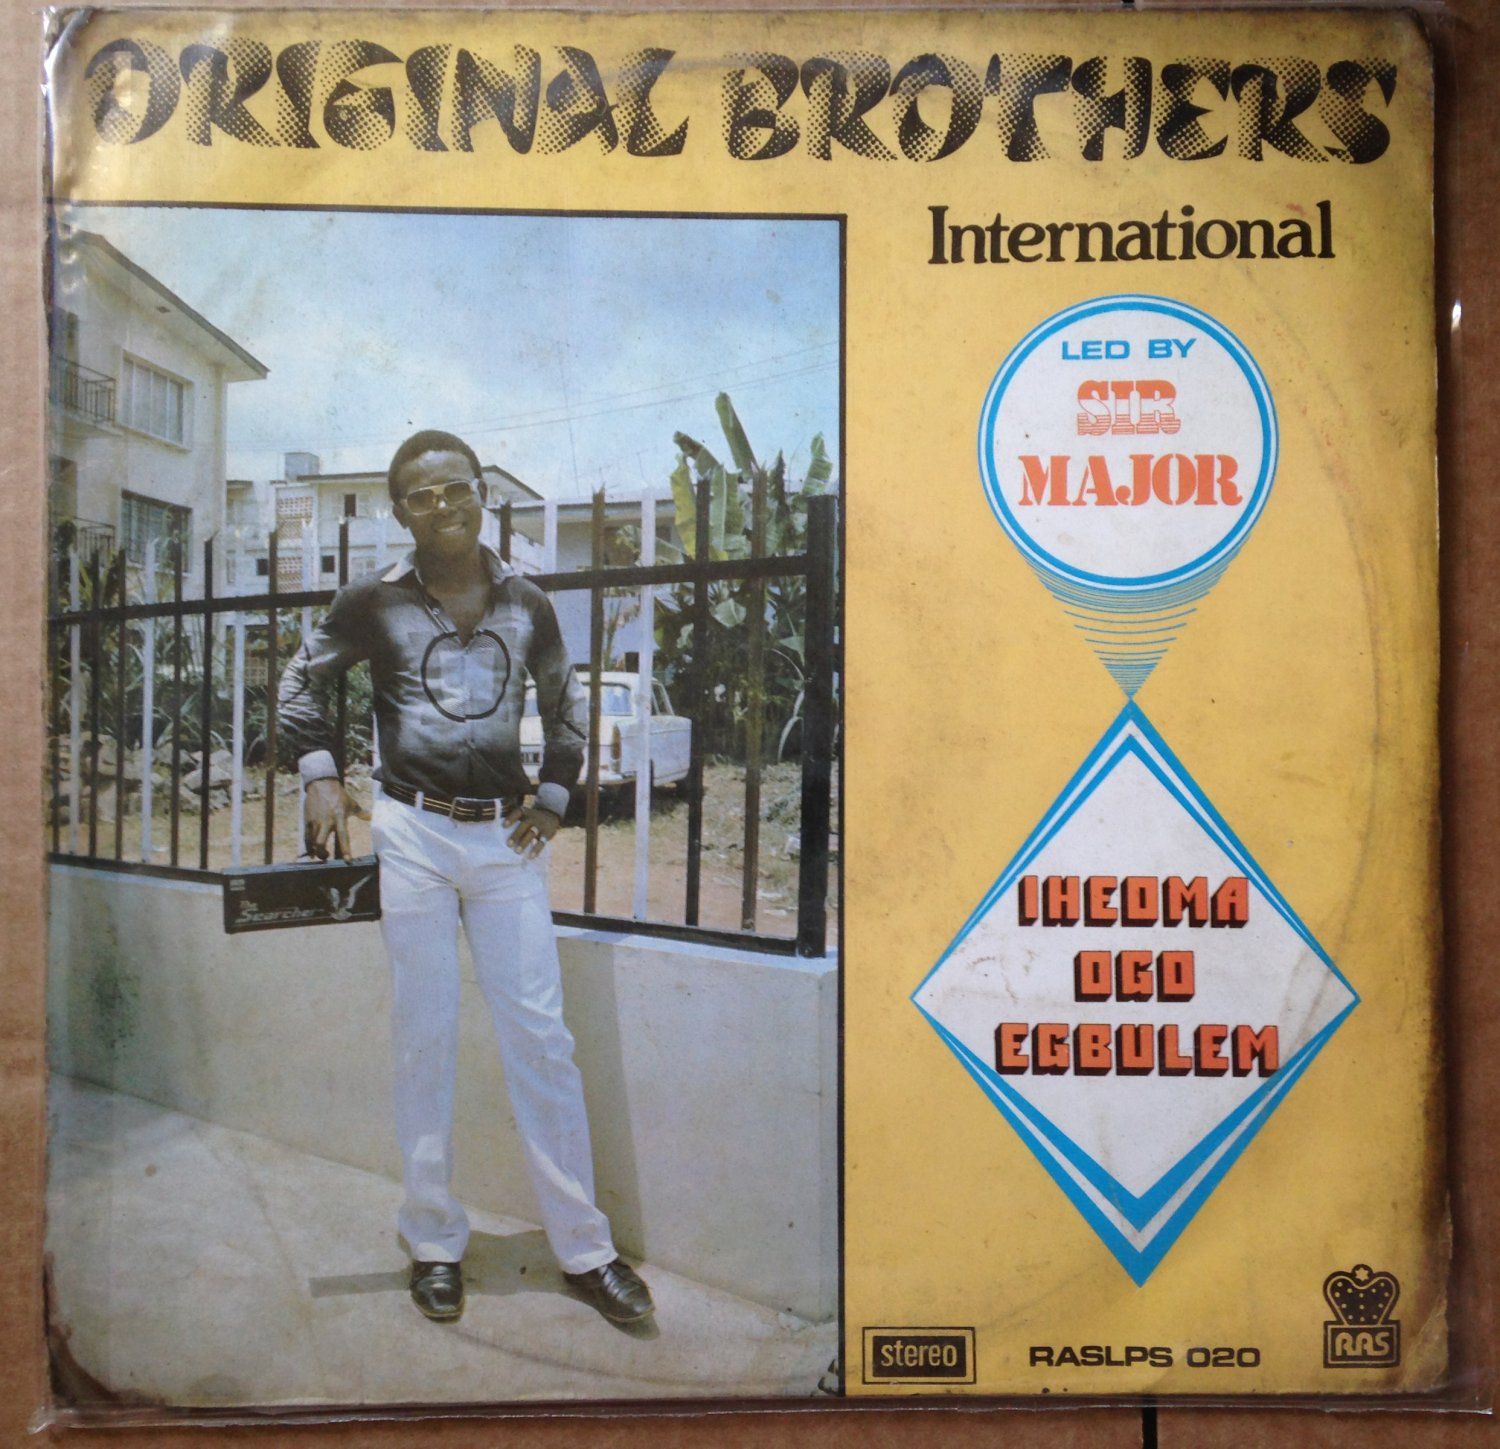 ORIGINAL BROTHERS INTERNATIONAL LP iheoma NIGERIA mp3 LISTEN